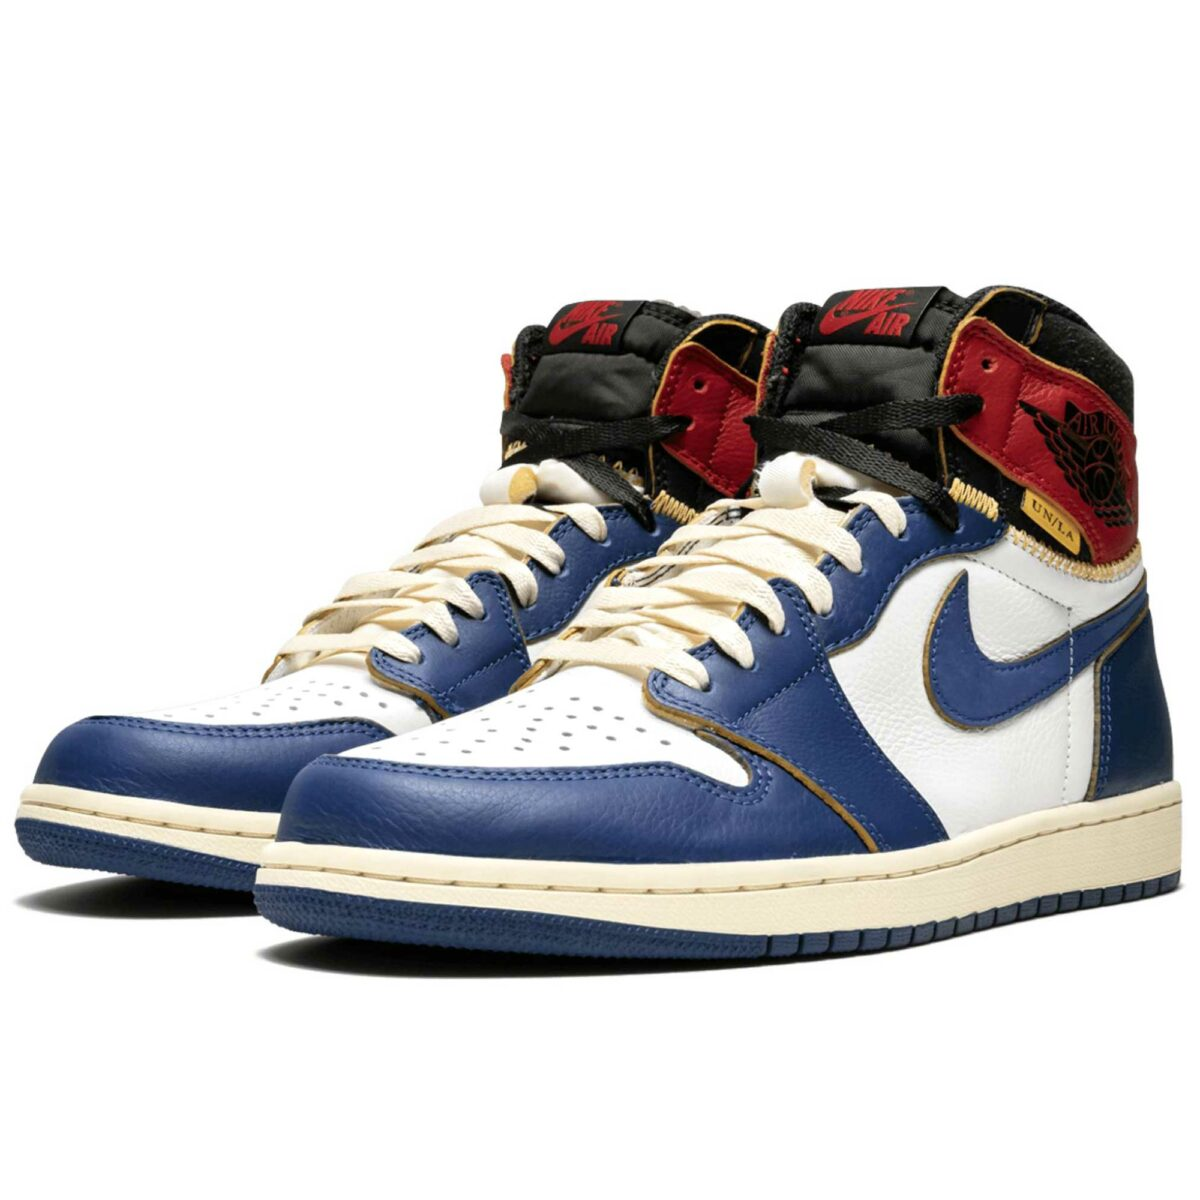 nike air Jordan 1 retro hi union storm blue BV1300_146 купить